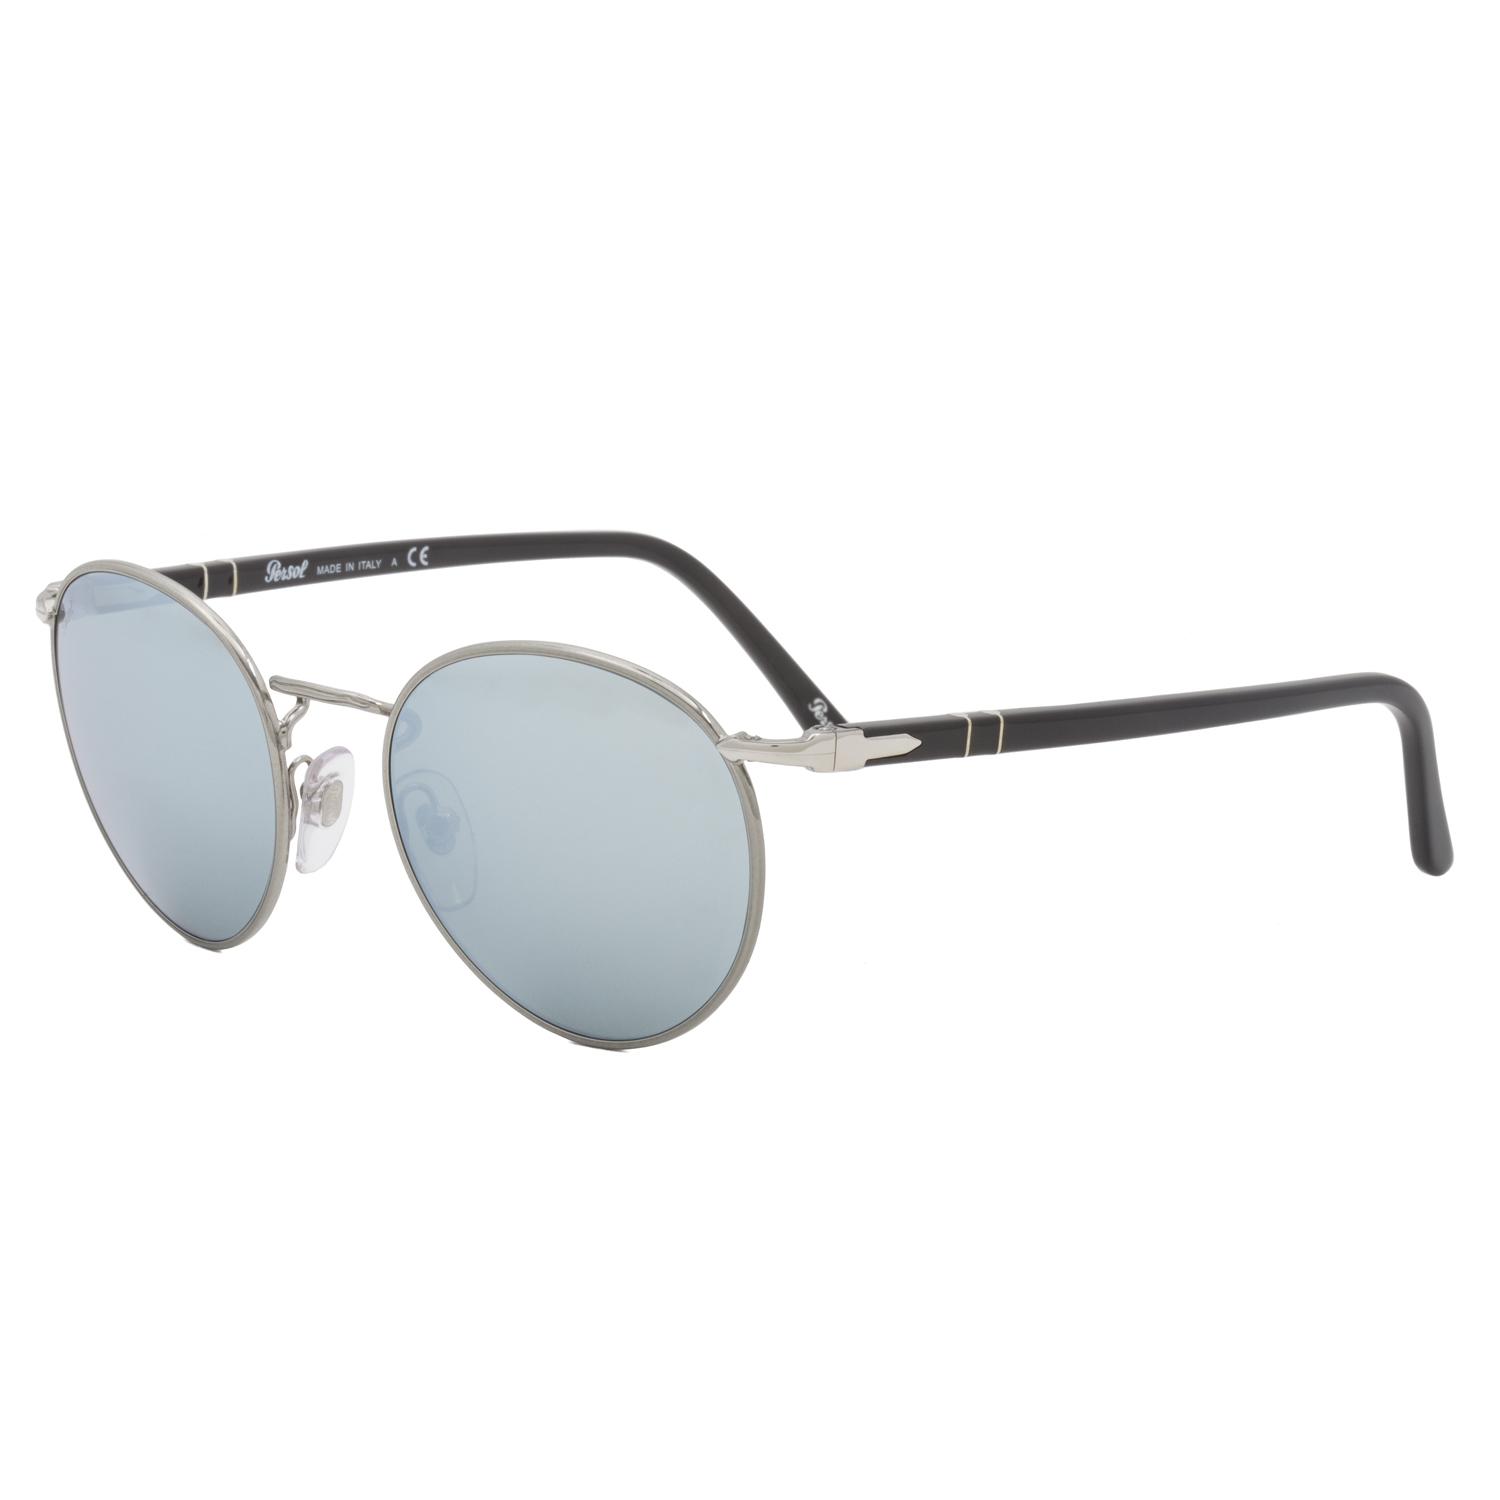 Persol PO2388S 103930 51-20 hsbUJD93